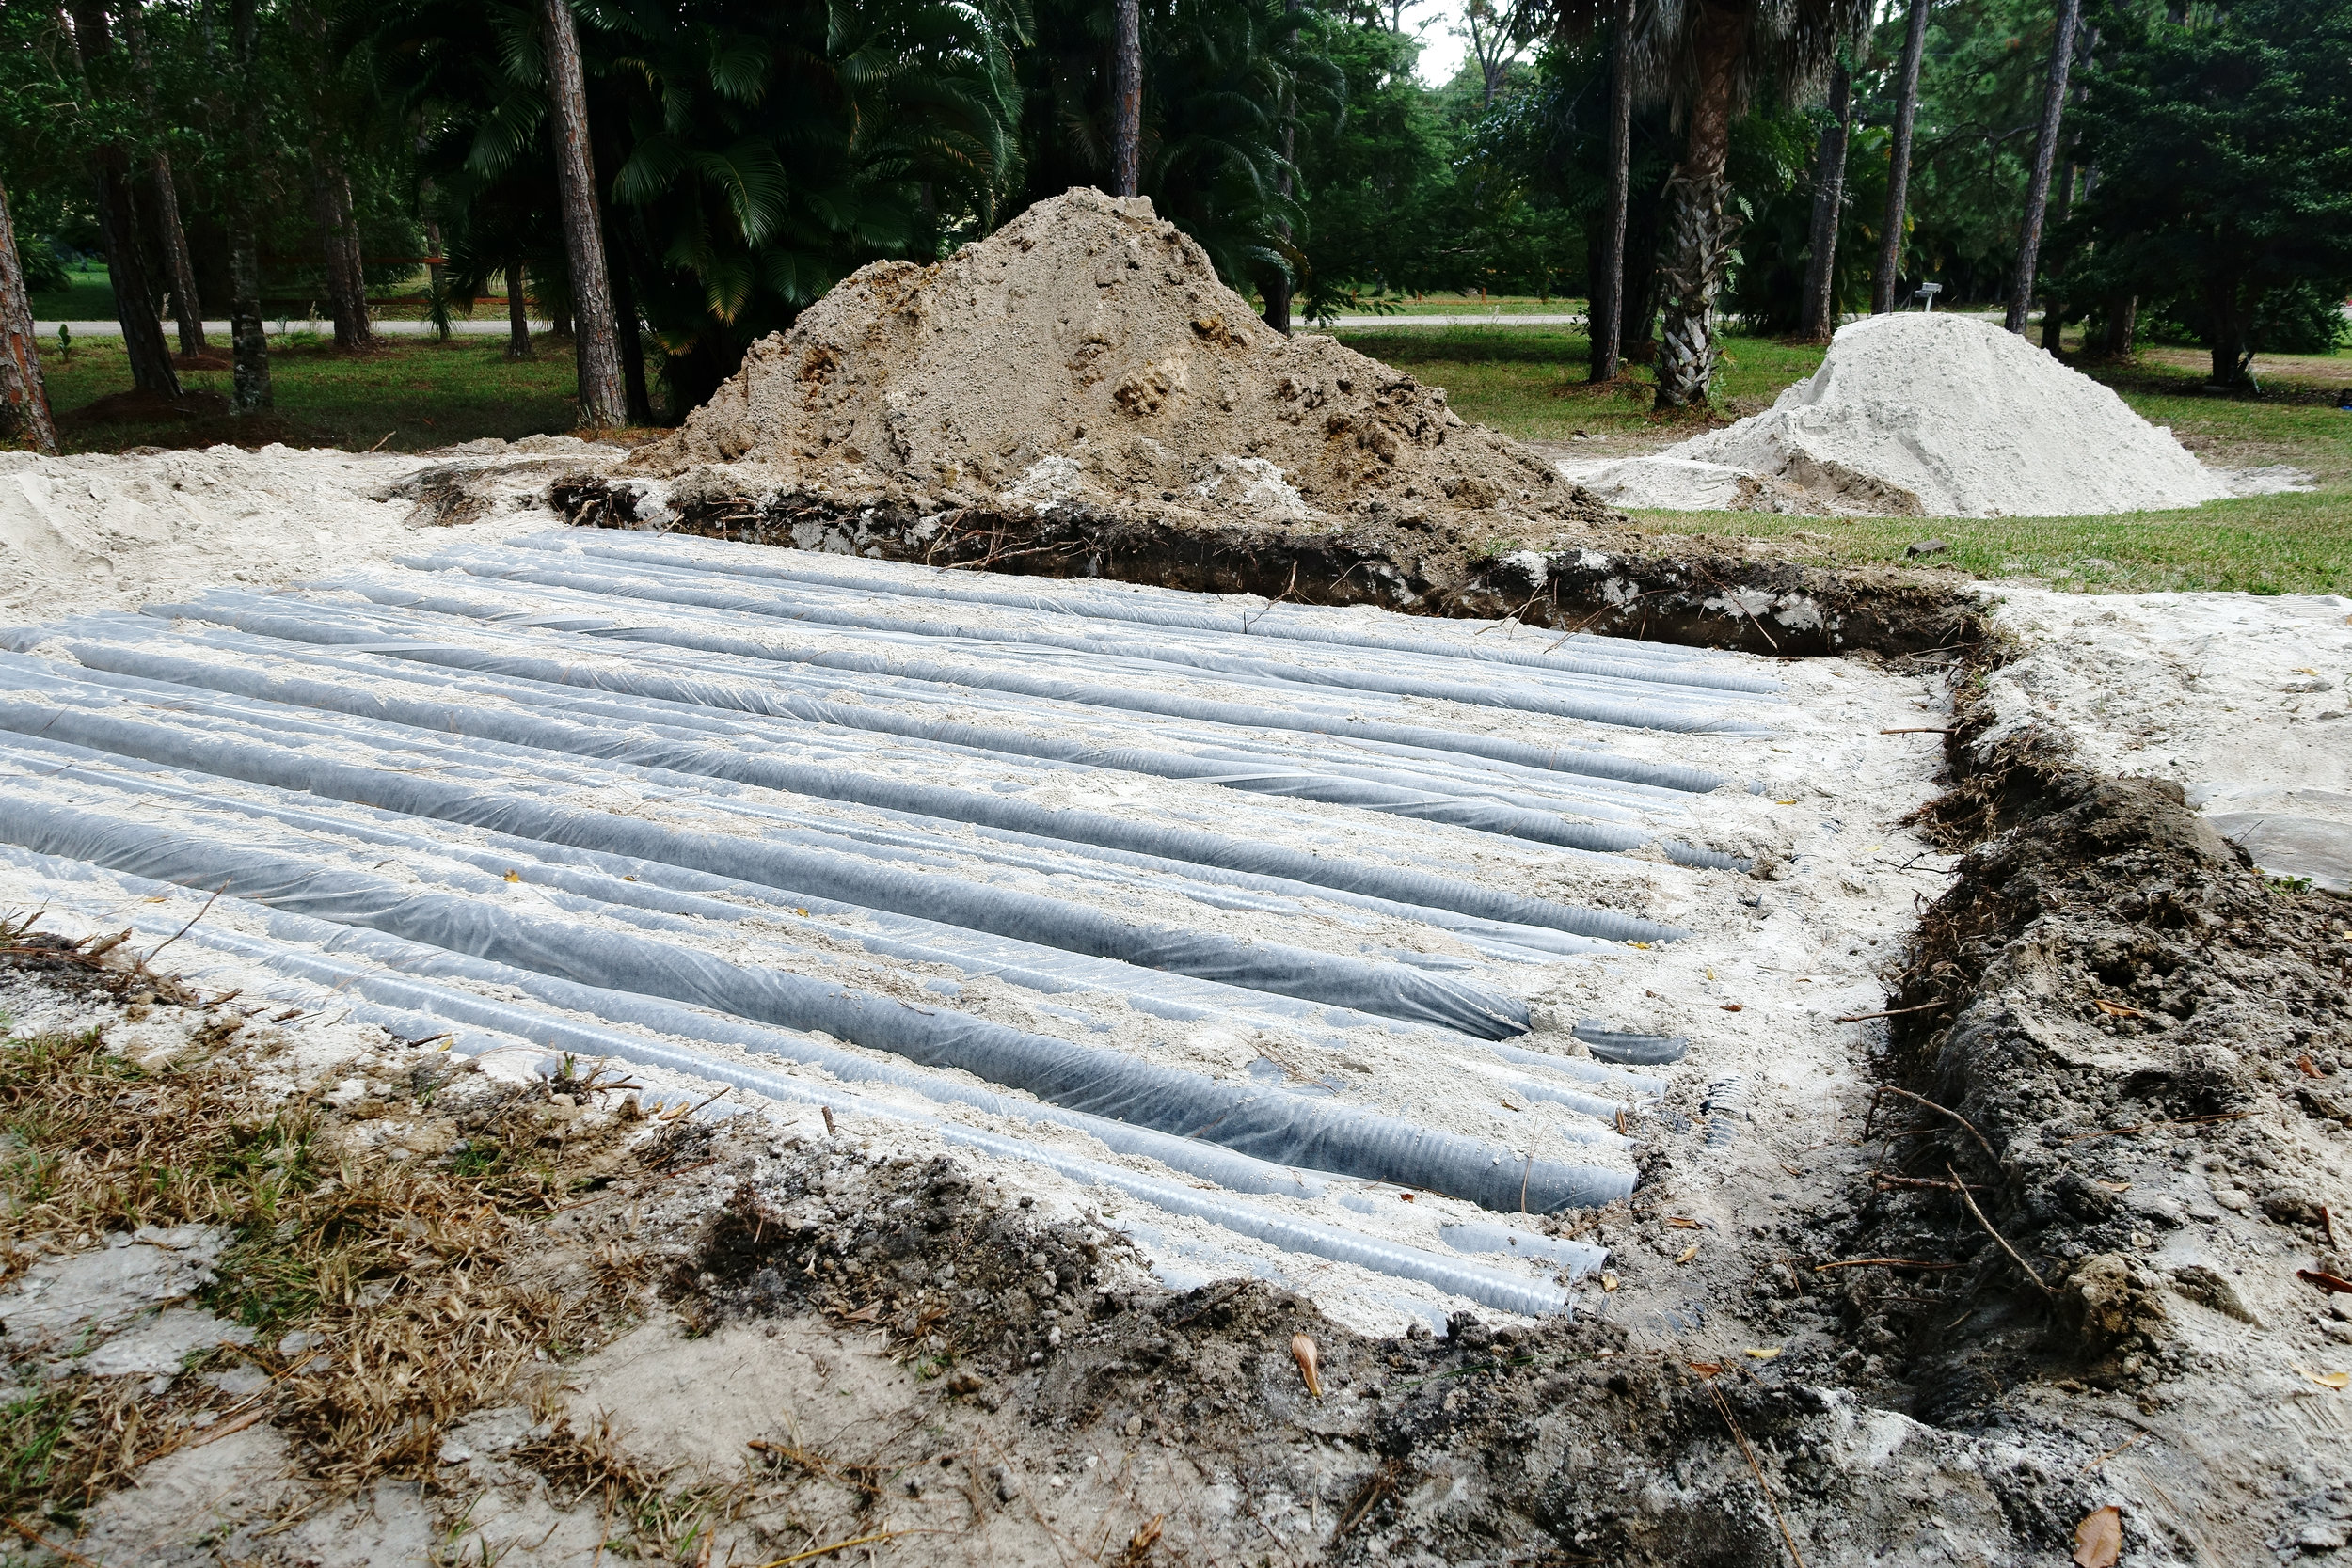 Kendall Septic Drainfield experts 24/7 service